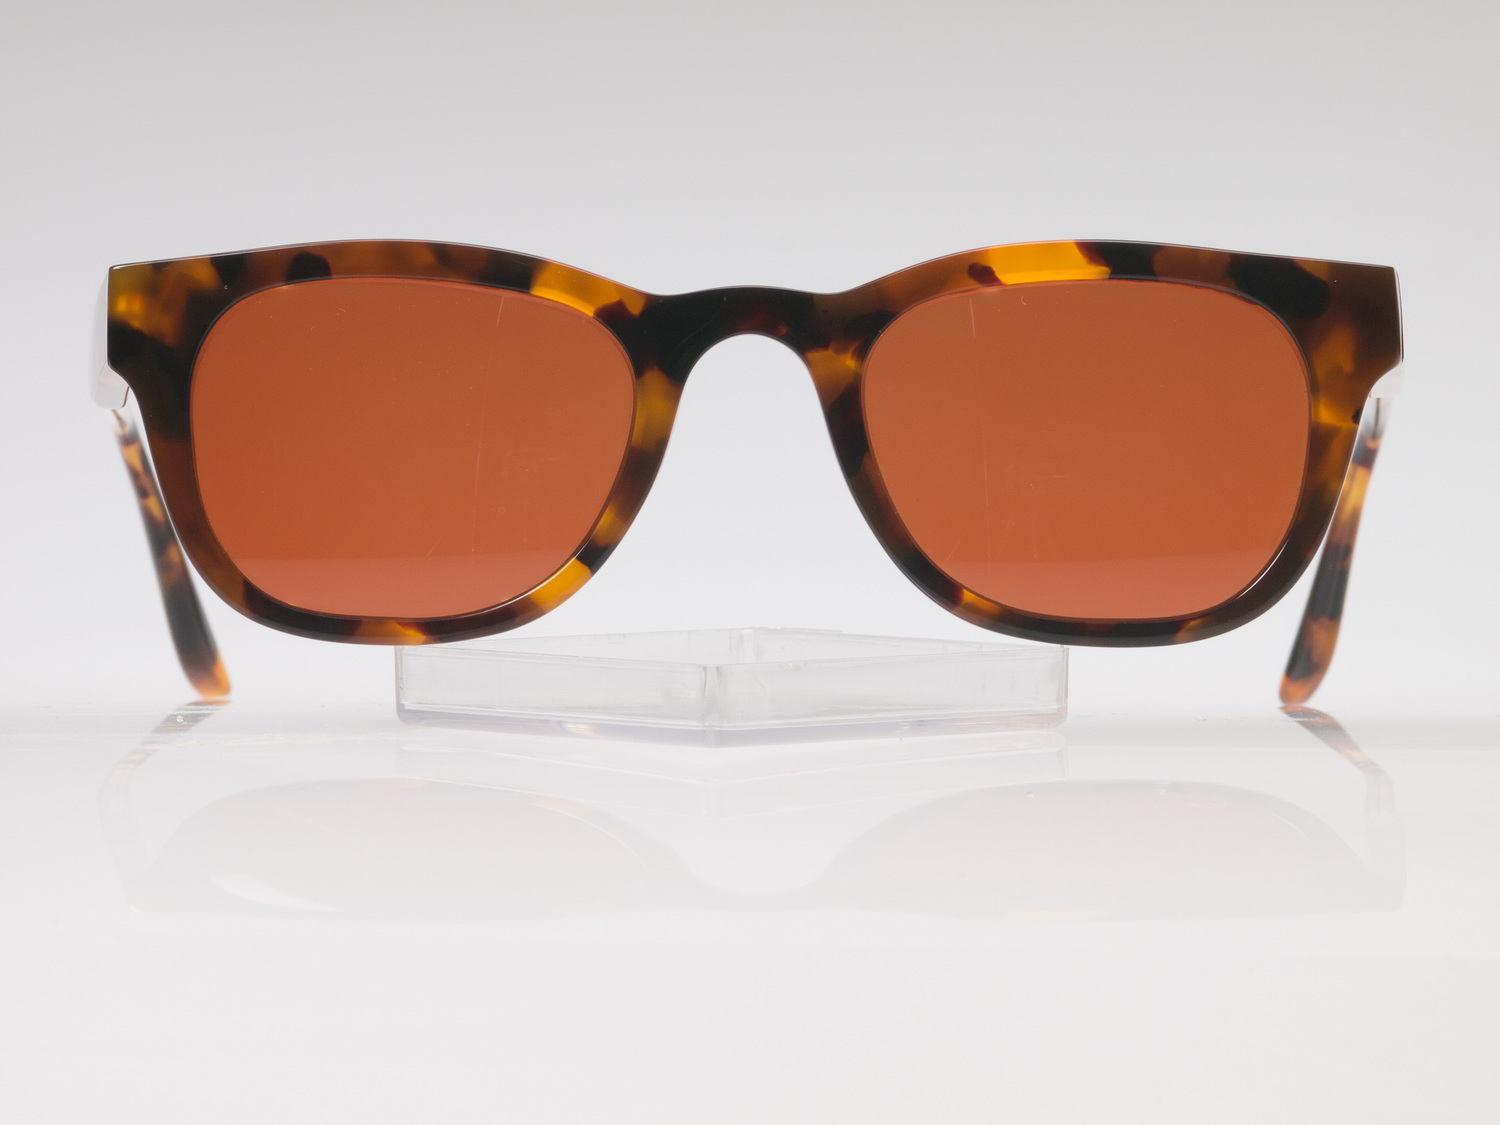 Indivijual-Custom-Sunglasses-5.jpg